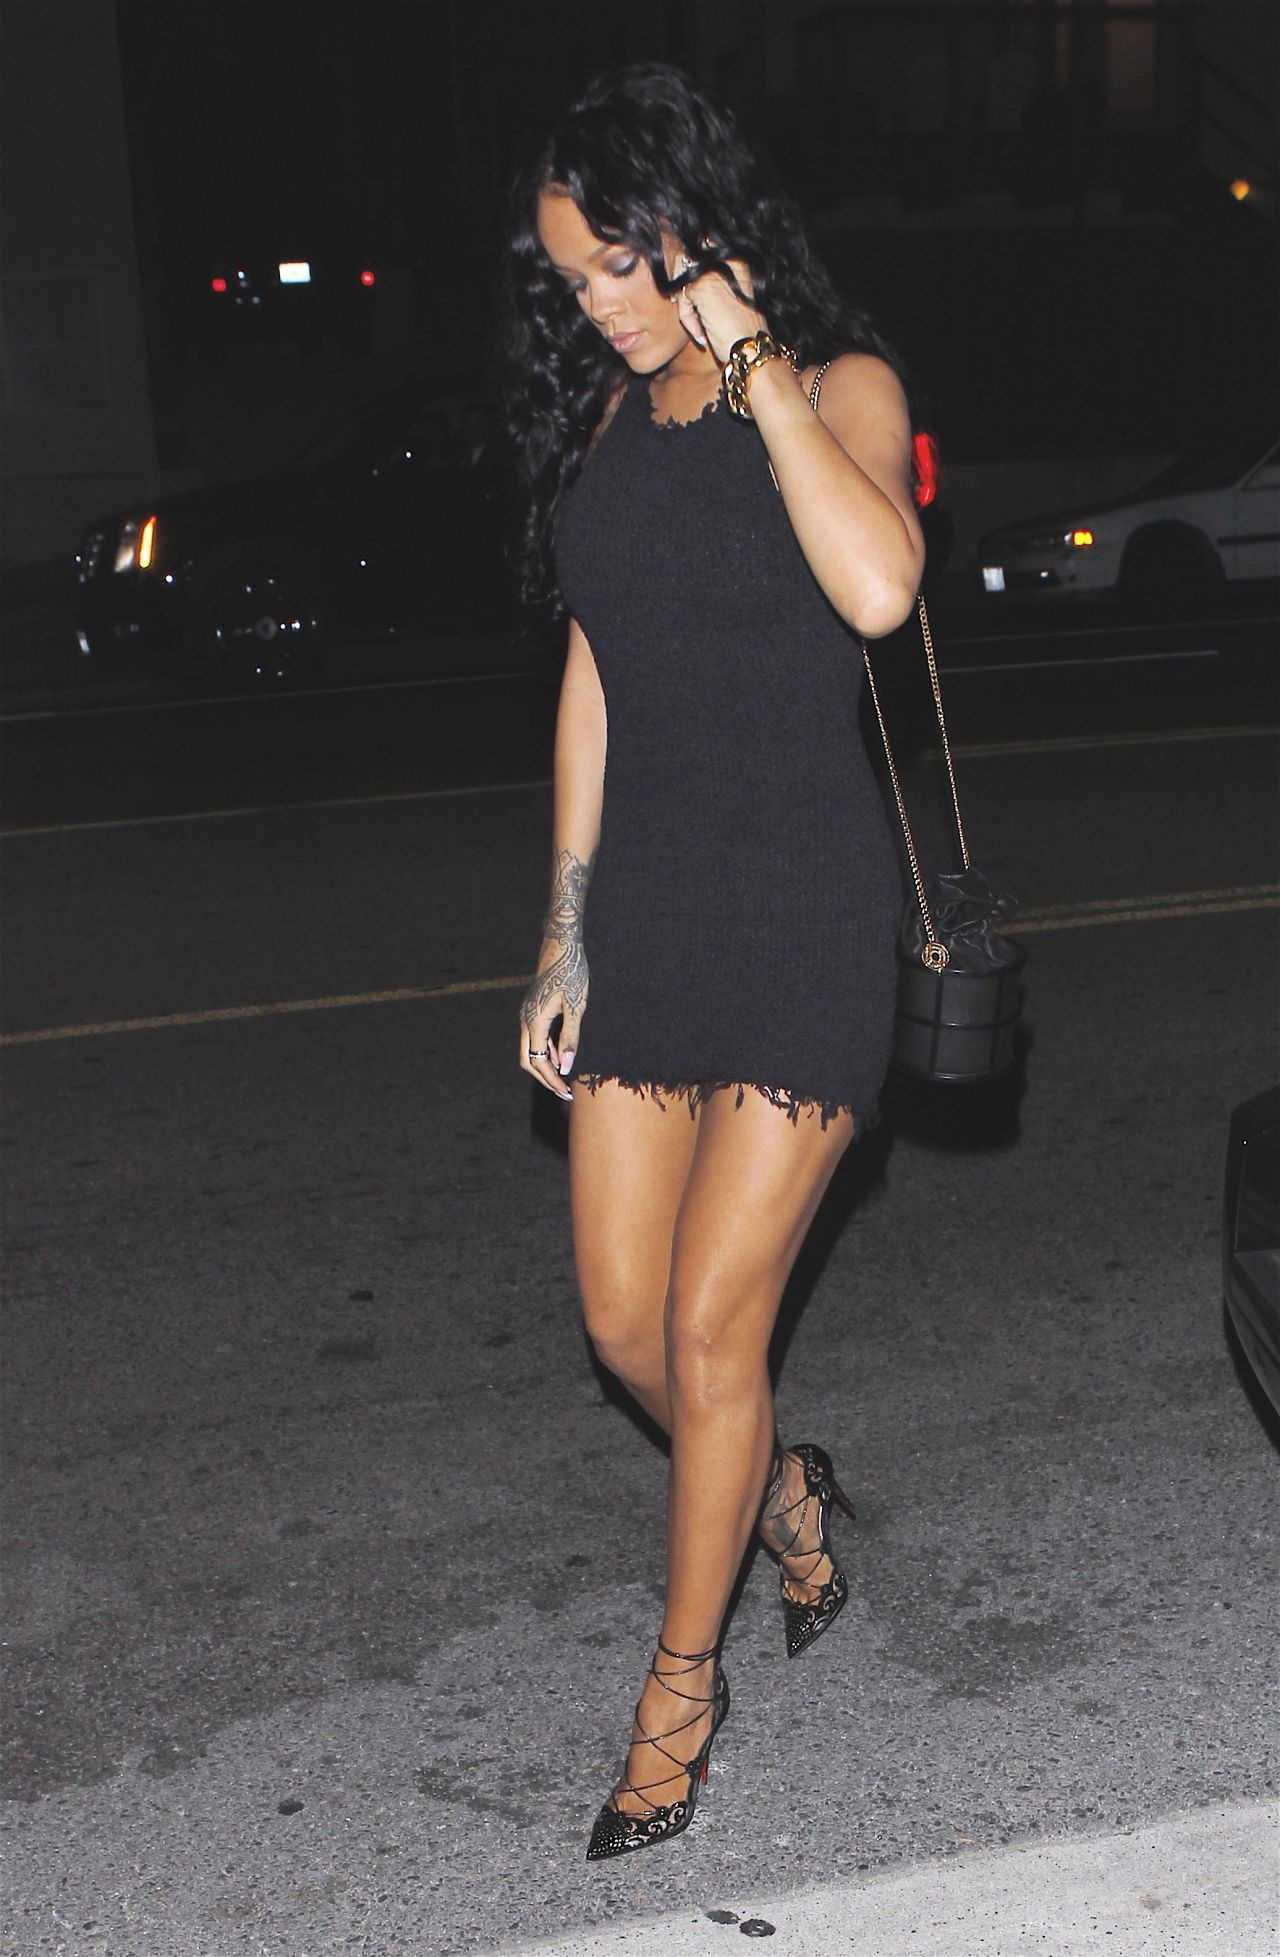 Rihanna - Leggy in Mini Dress, at Giorgio Baldi Restaurant in Santa Monica - April 2014